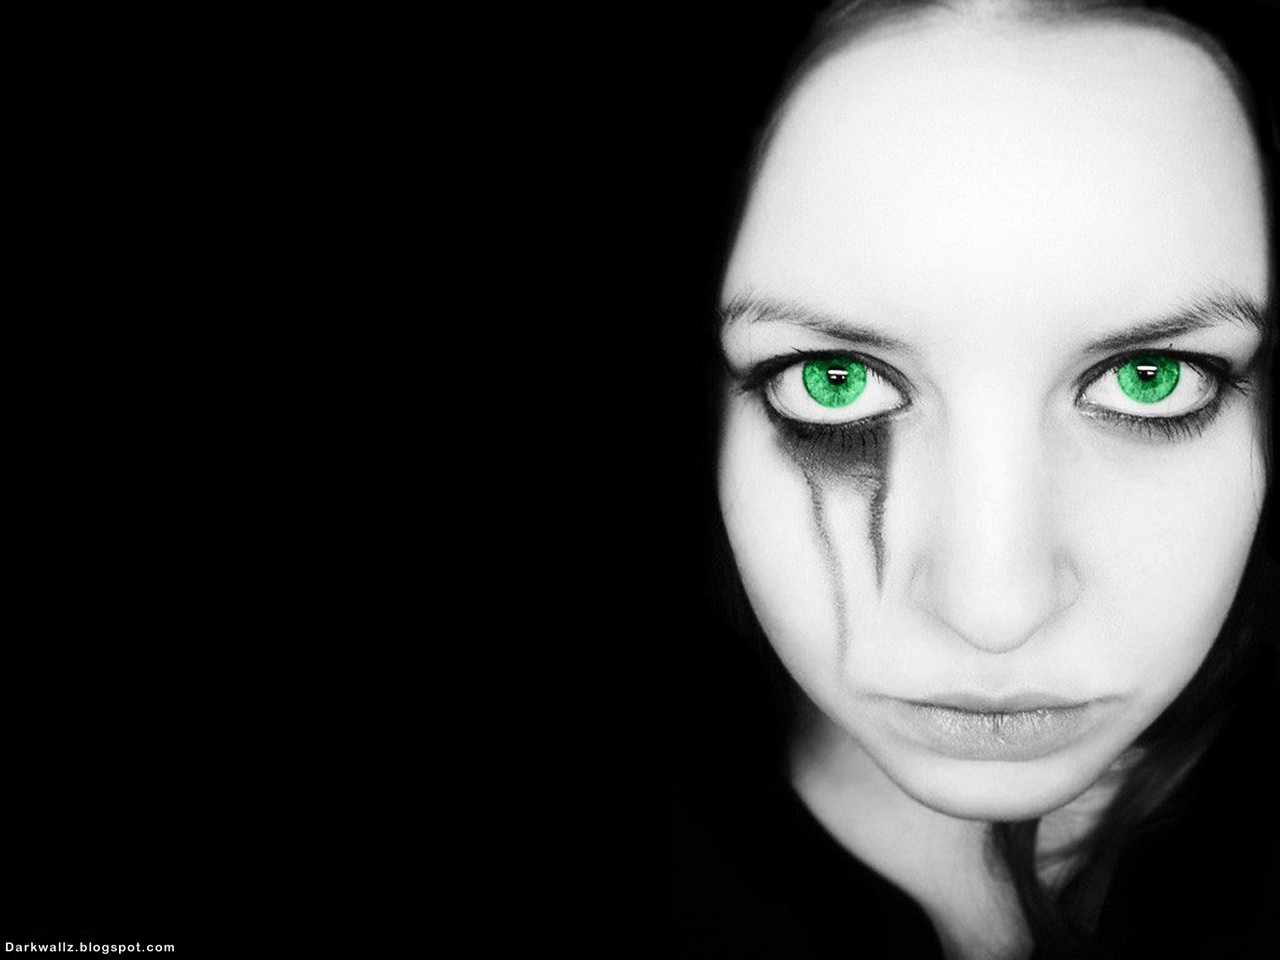 Gothic Girl With Green Eyes | Dark Wallpaper Download